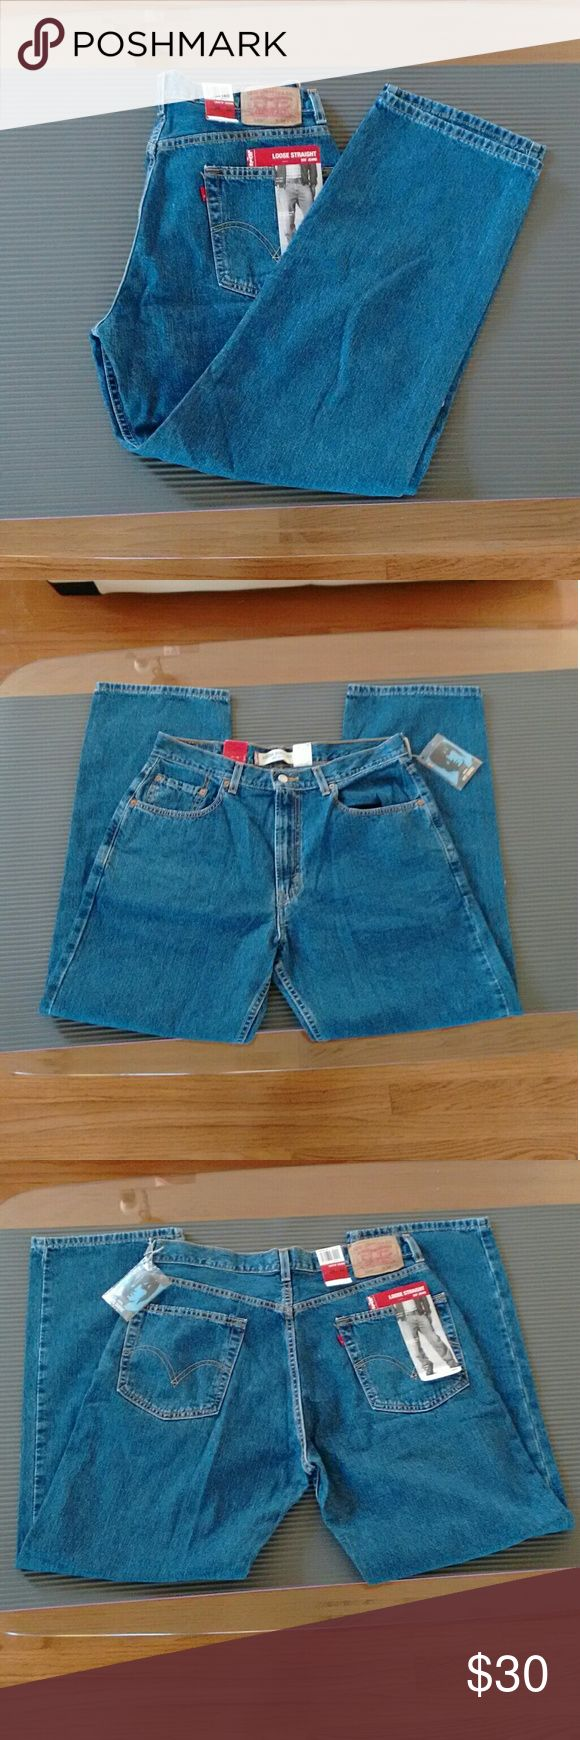 NWT Men's Levis 569 Loose Straight 34x32 Jeans Levi's 569, loose straight fit through seat and thigh, low rise jeans. 34x32. NWT (one tag is loose). Levi's Jeans Straight